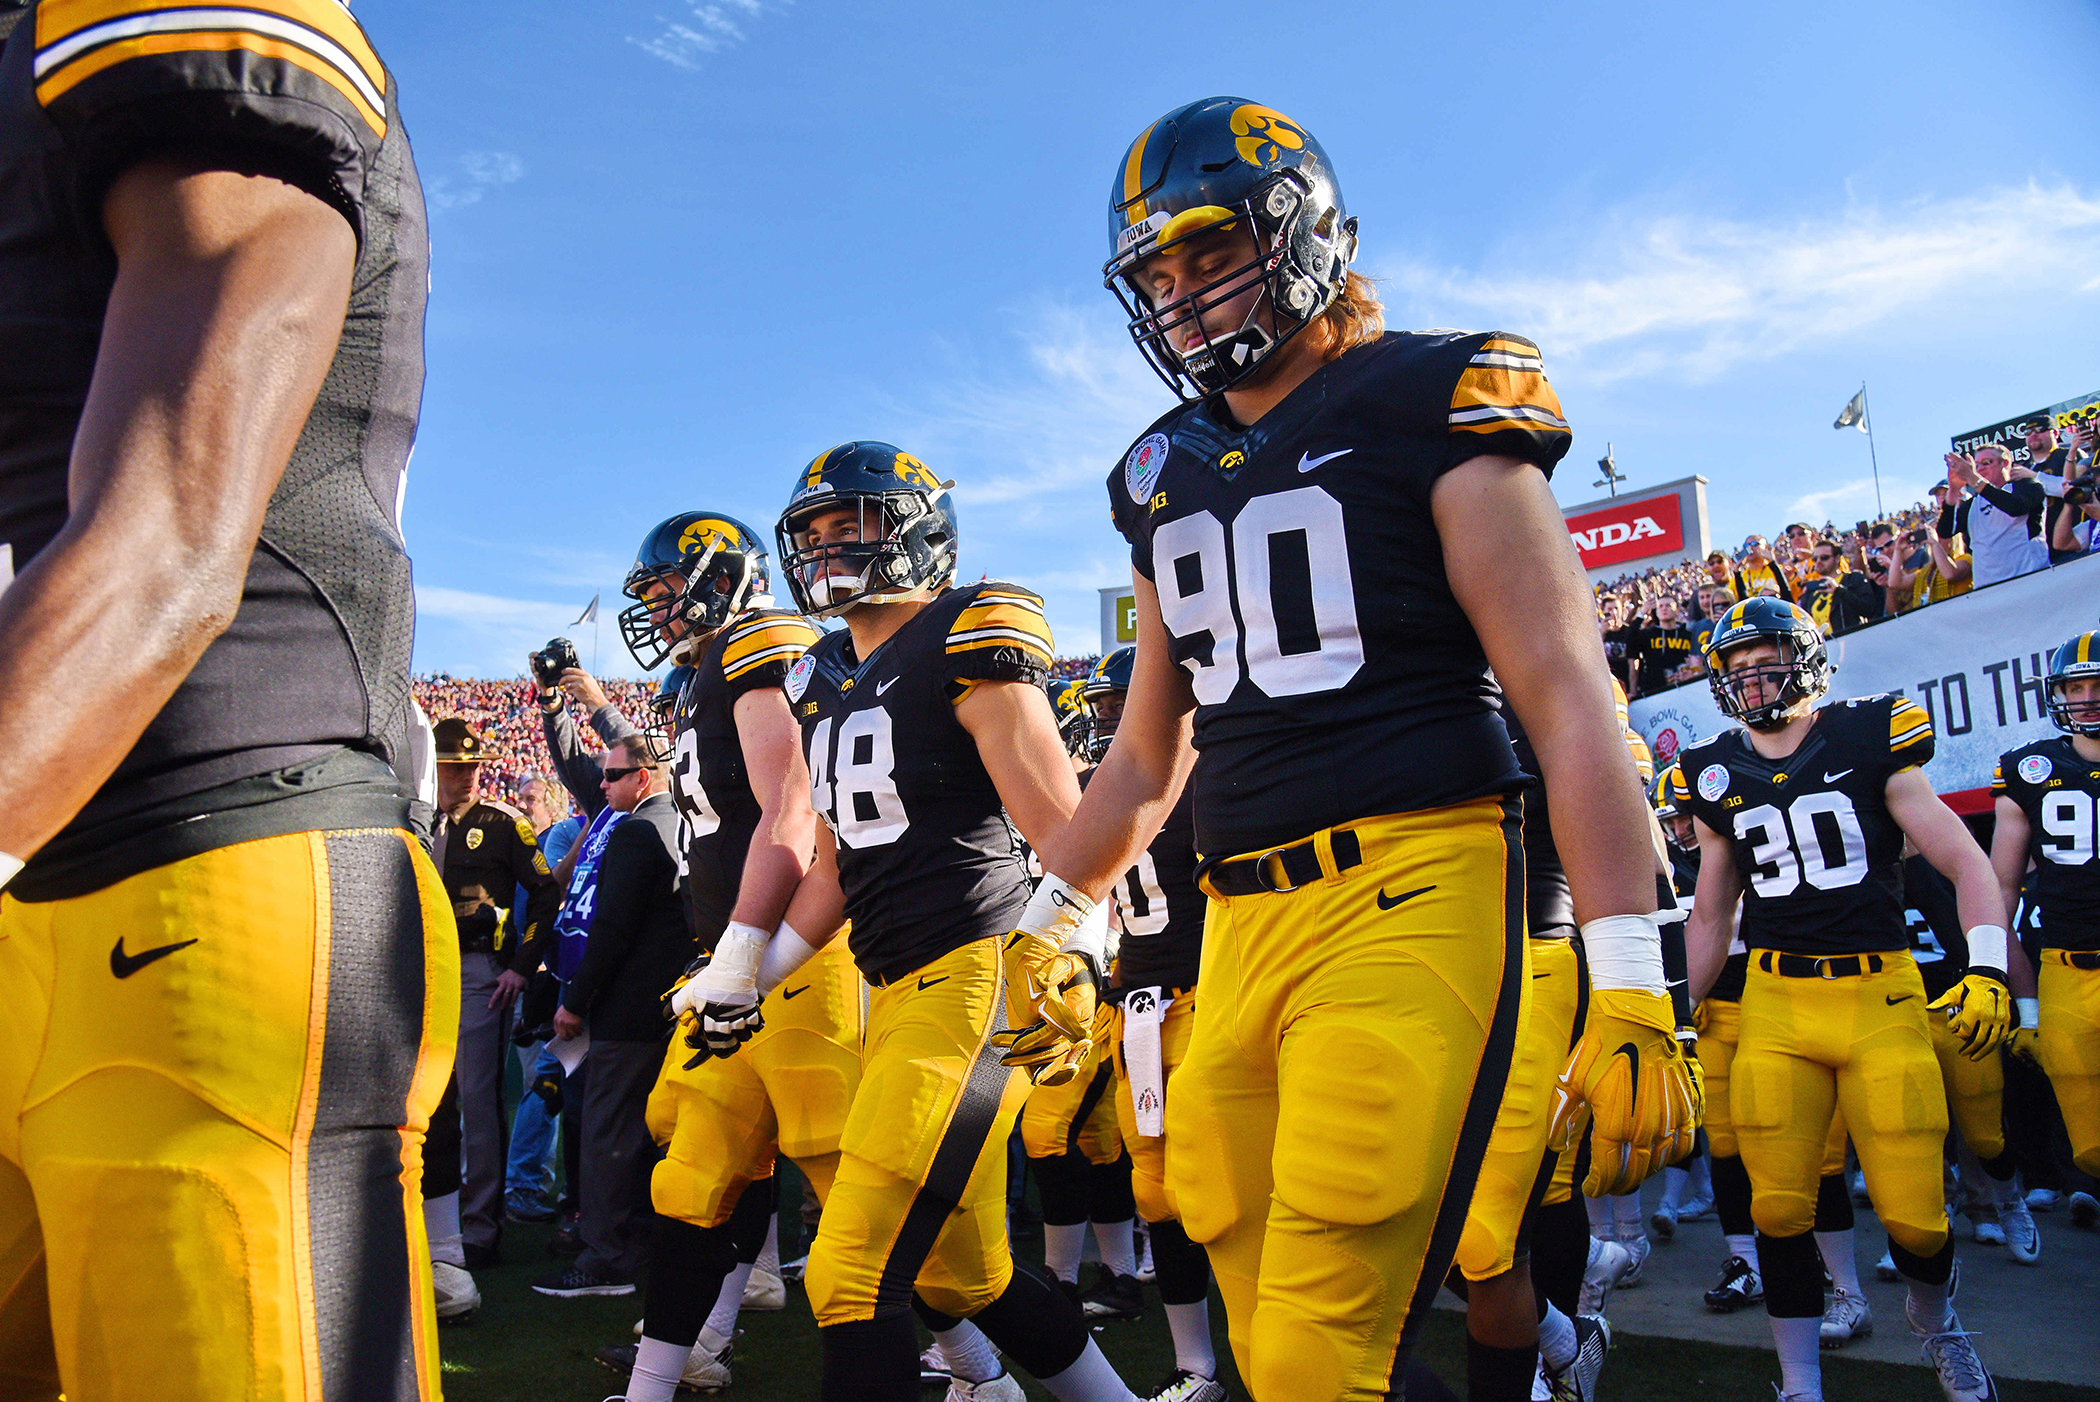 Though vanquished in this year's Rose Bowl, Iowa's Hawkeyes are among the handful of college athletic programs that actually turn a profit.